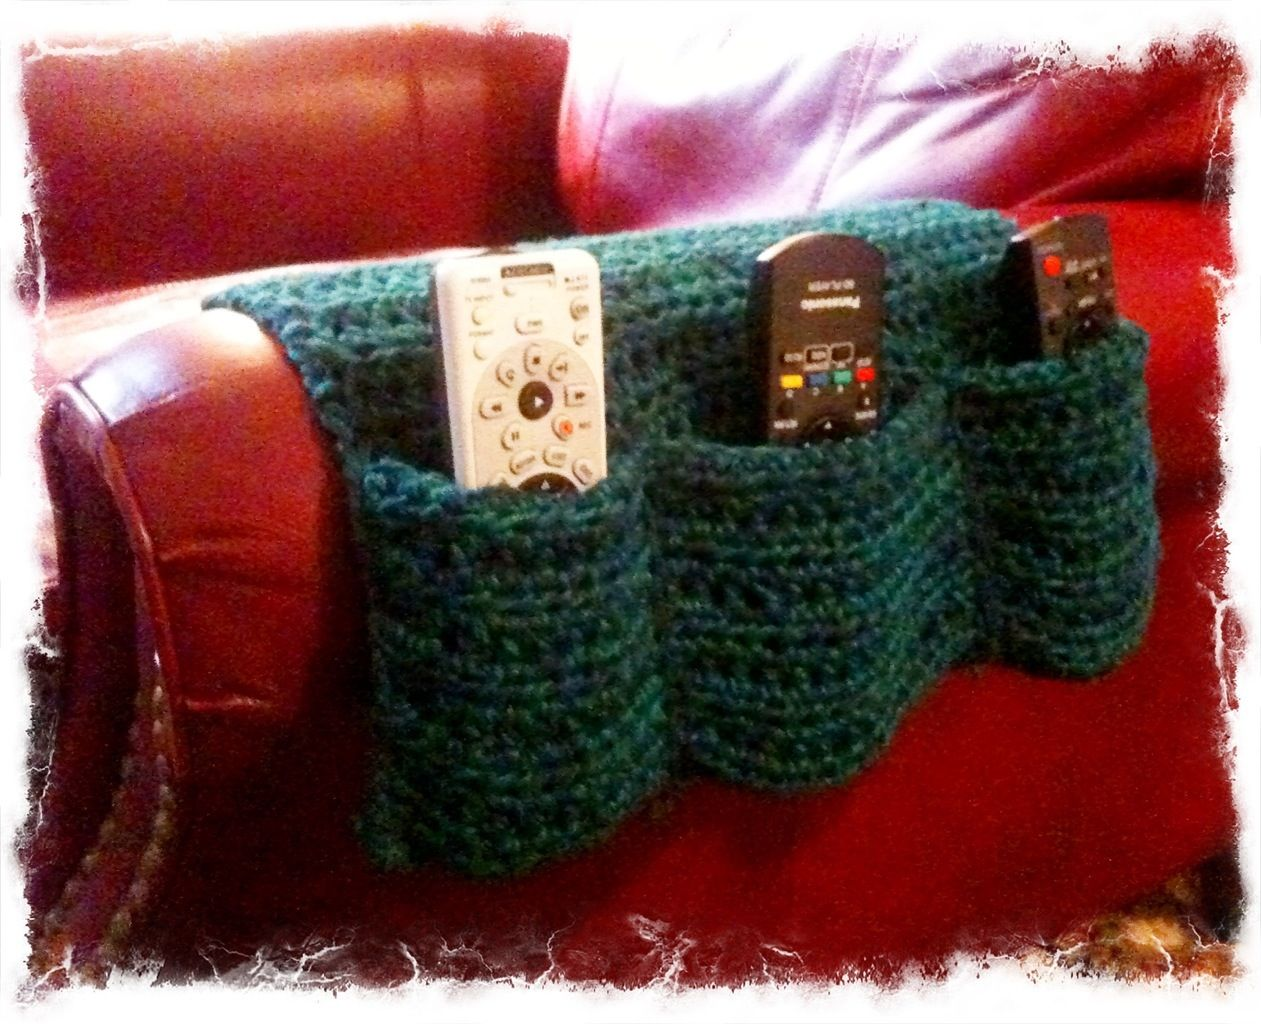 I used some left over yarn to create this arm chair caddy for remote ...